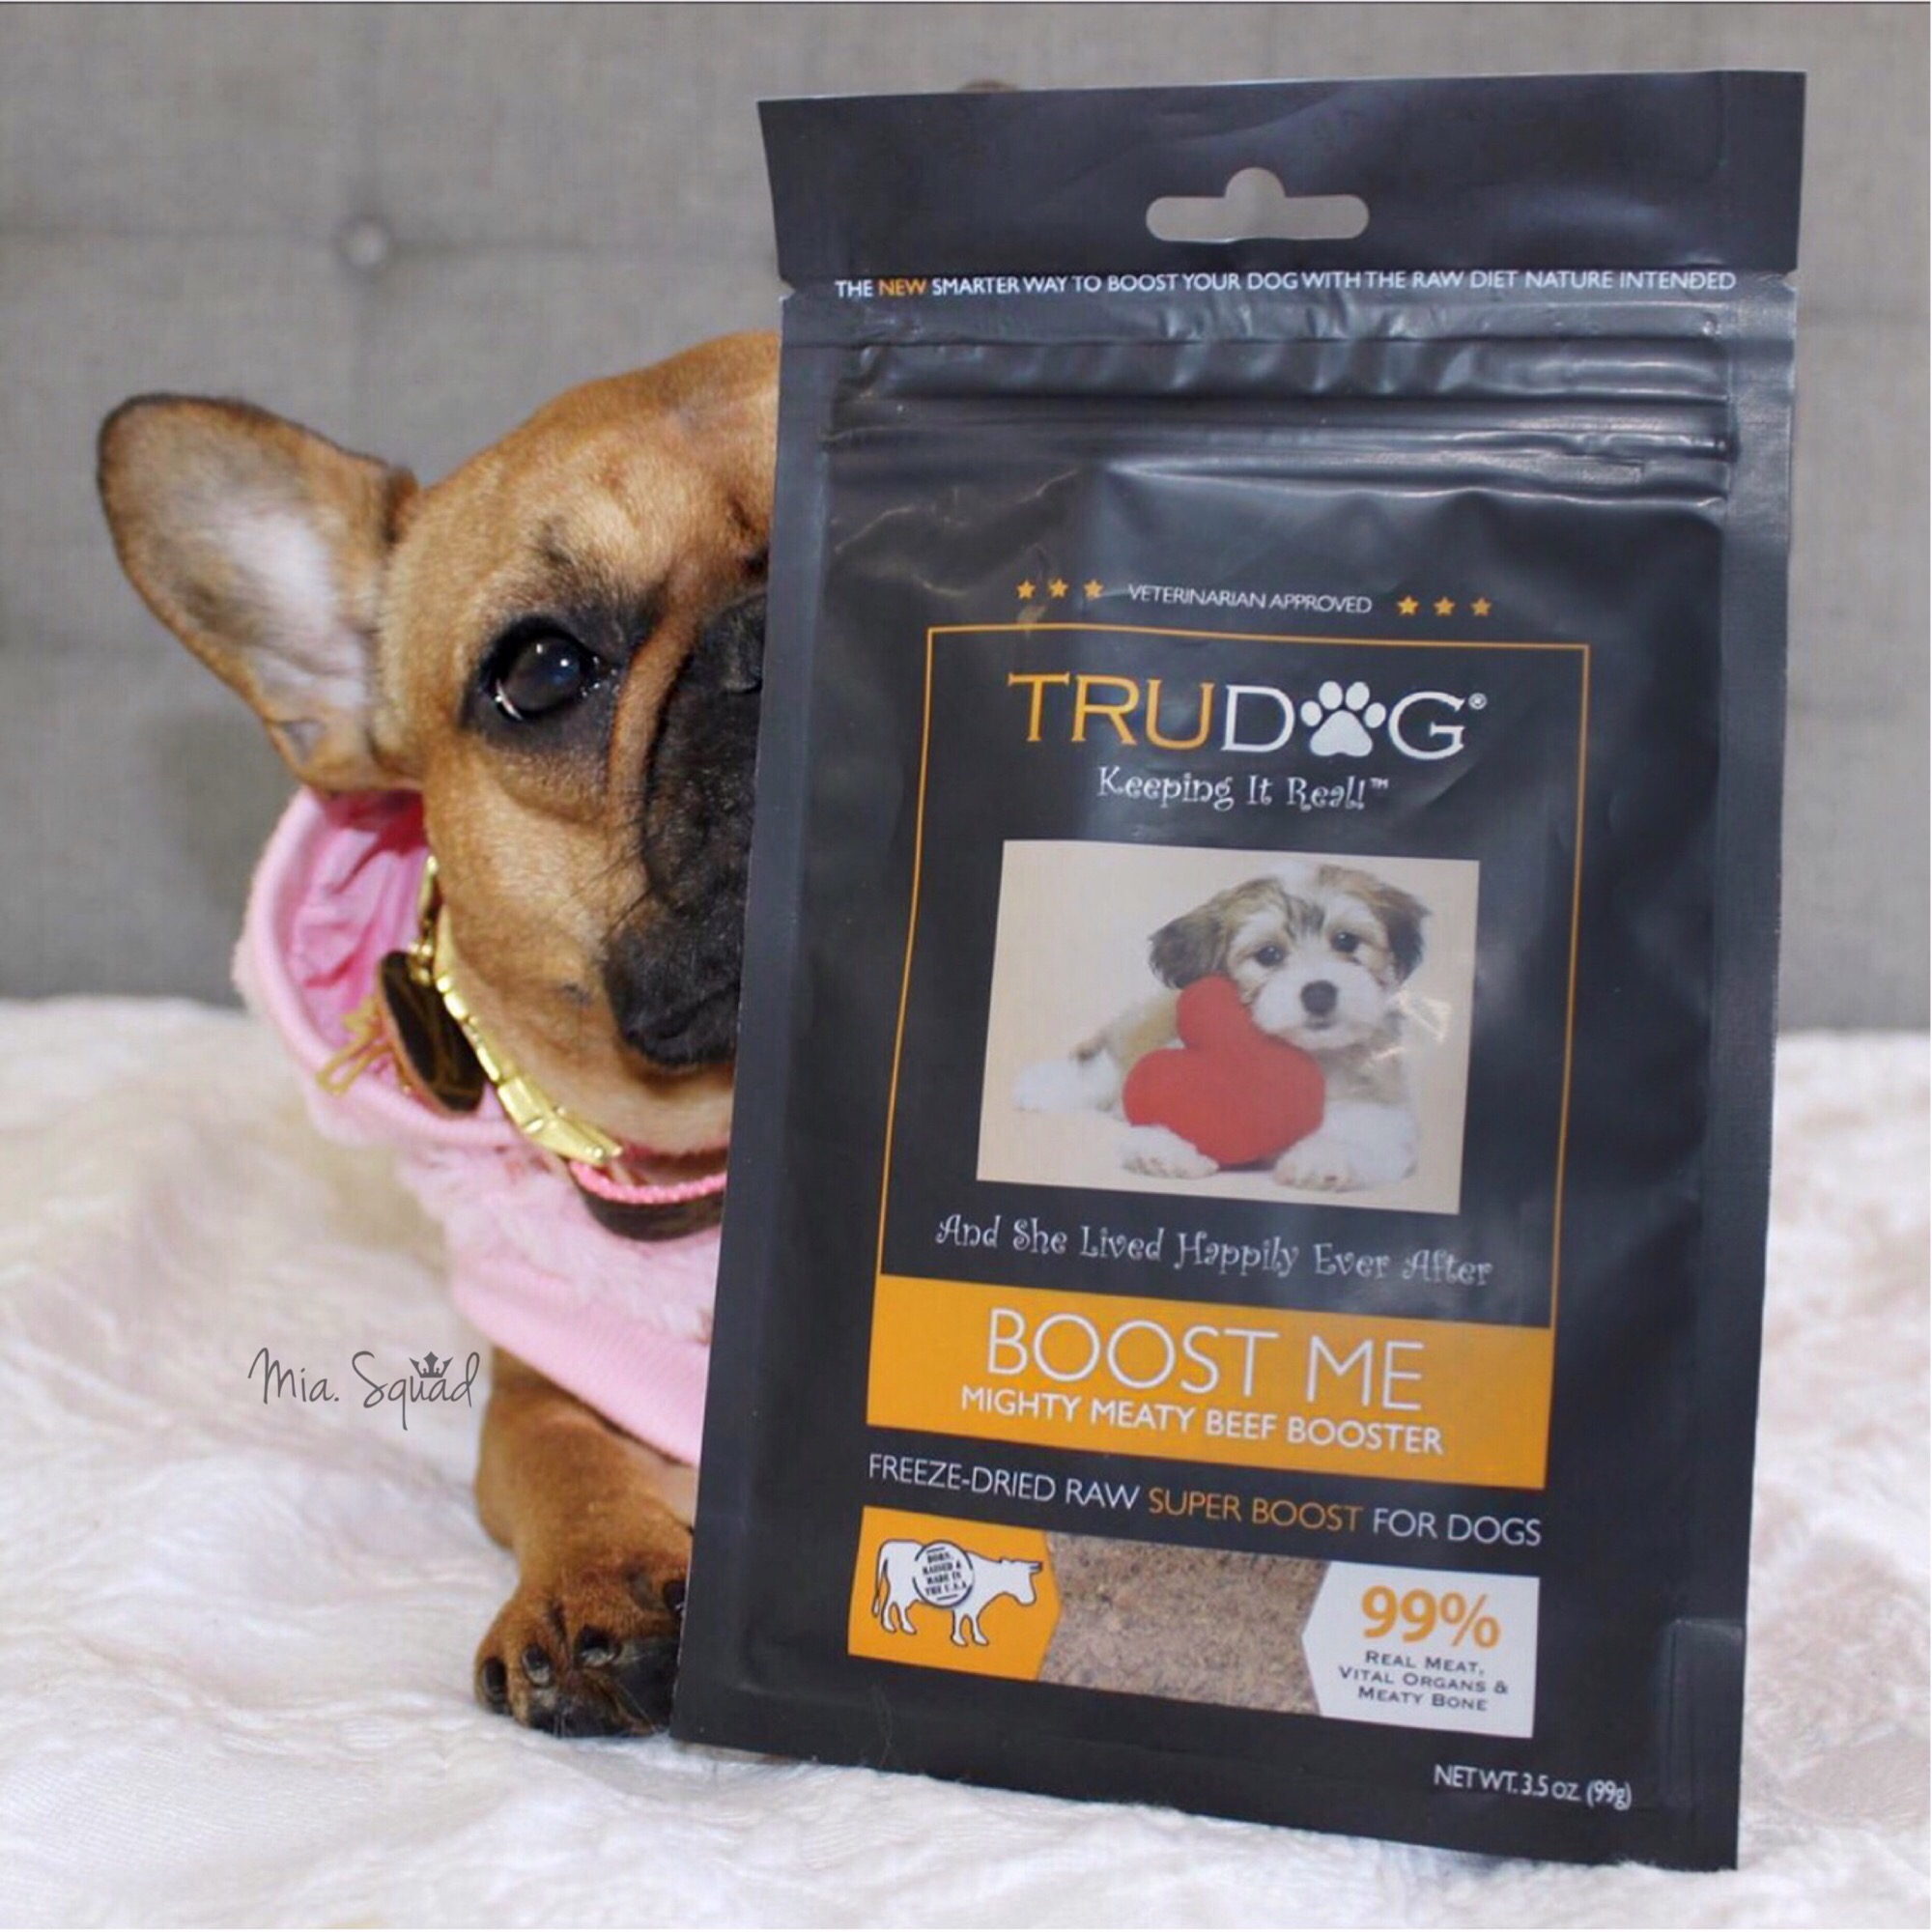 c15fc12c To learn more or order wholesome food, treats, supplements, and grooming  products for your favorite canine, visit TruDog.com.